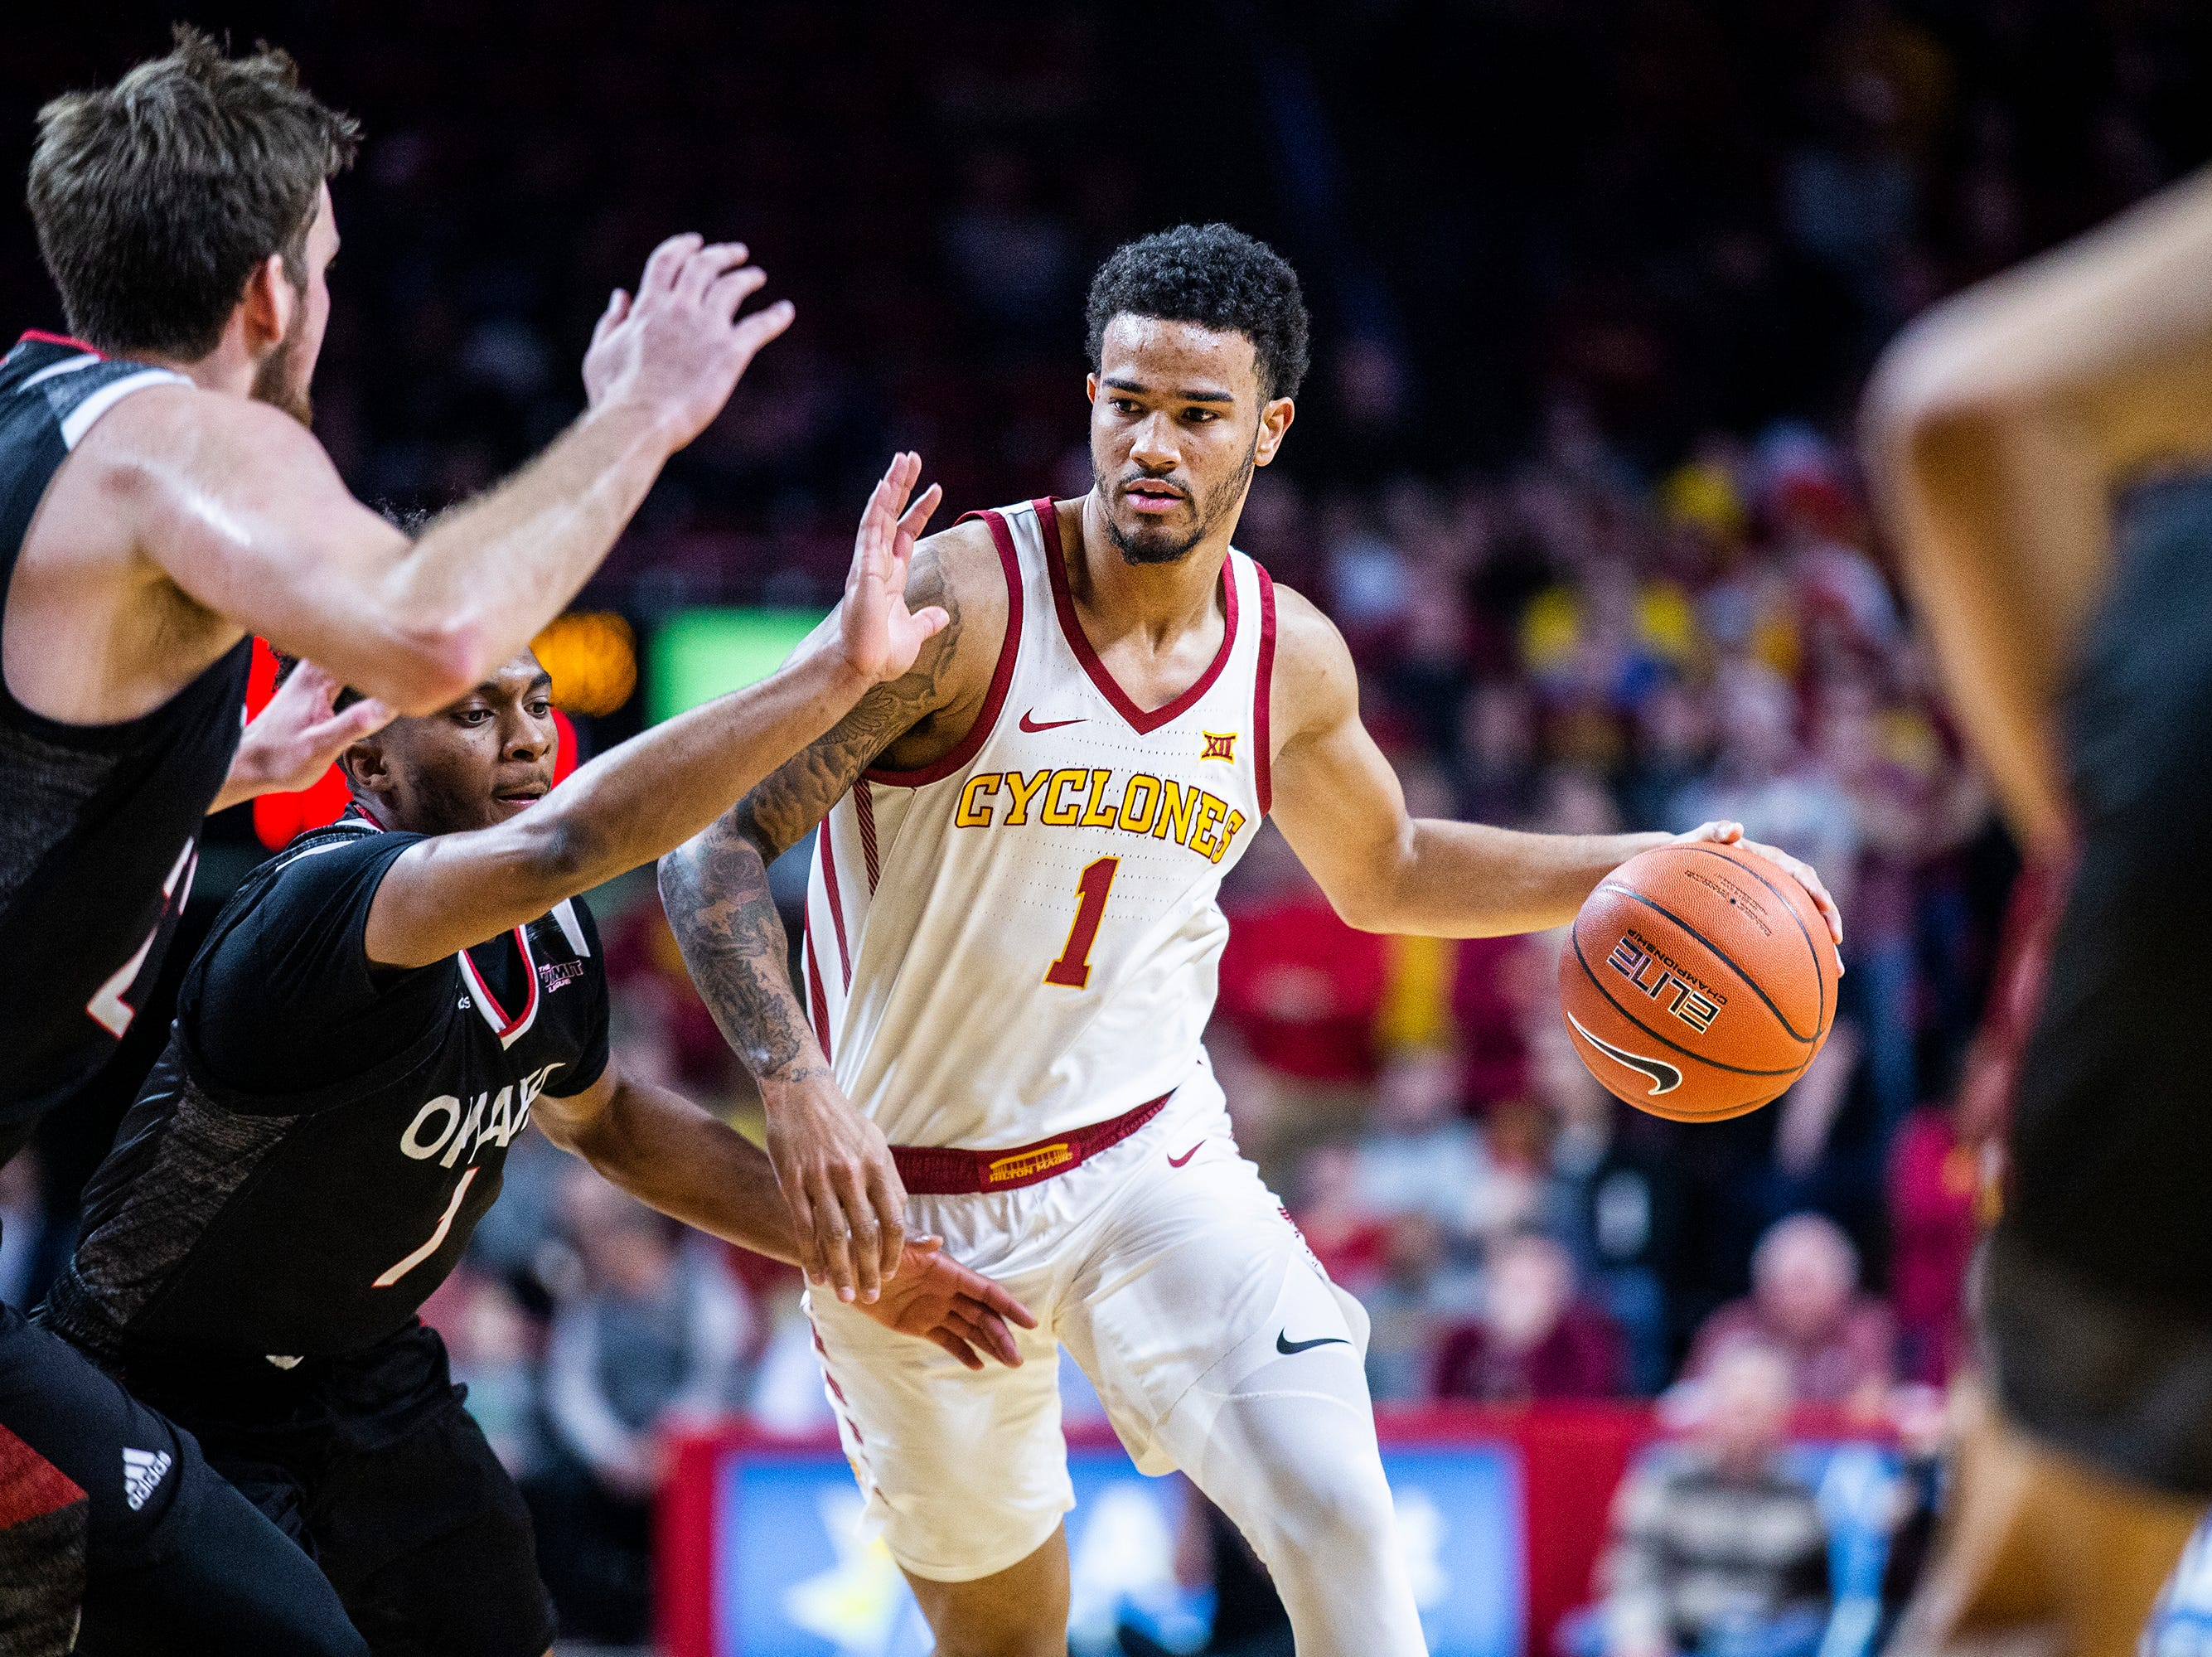 Iowa State's Nick Weiler-Babb brings the ball down the court during the Iowa State men's basketball game against Omaha on Monday, Nov. 26, 2018, at Hilton Coliseum, in Ames.